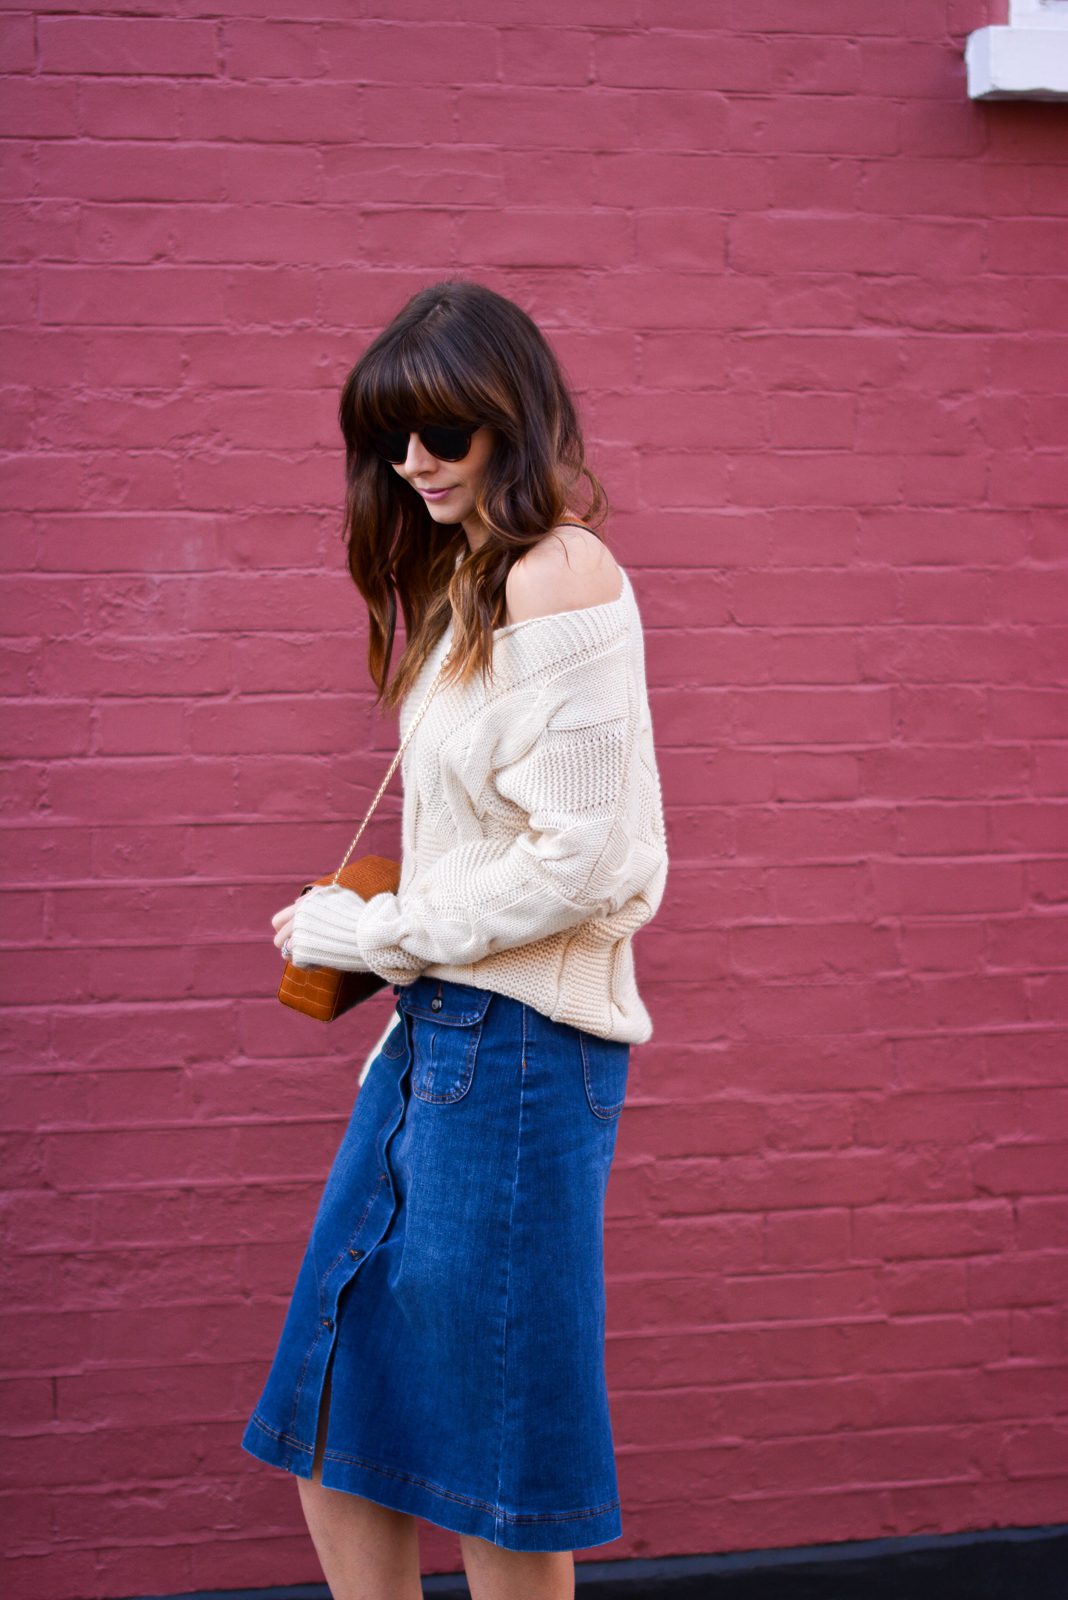 EJSTYLE - Emma Hill, 70's style, london street style, LFW AW15, M&S denim a line skirt, off shoulder cable knit jumper, Dune box bag, fashion blogger